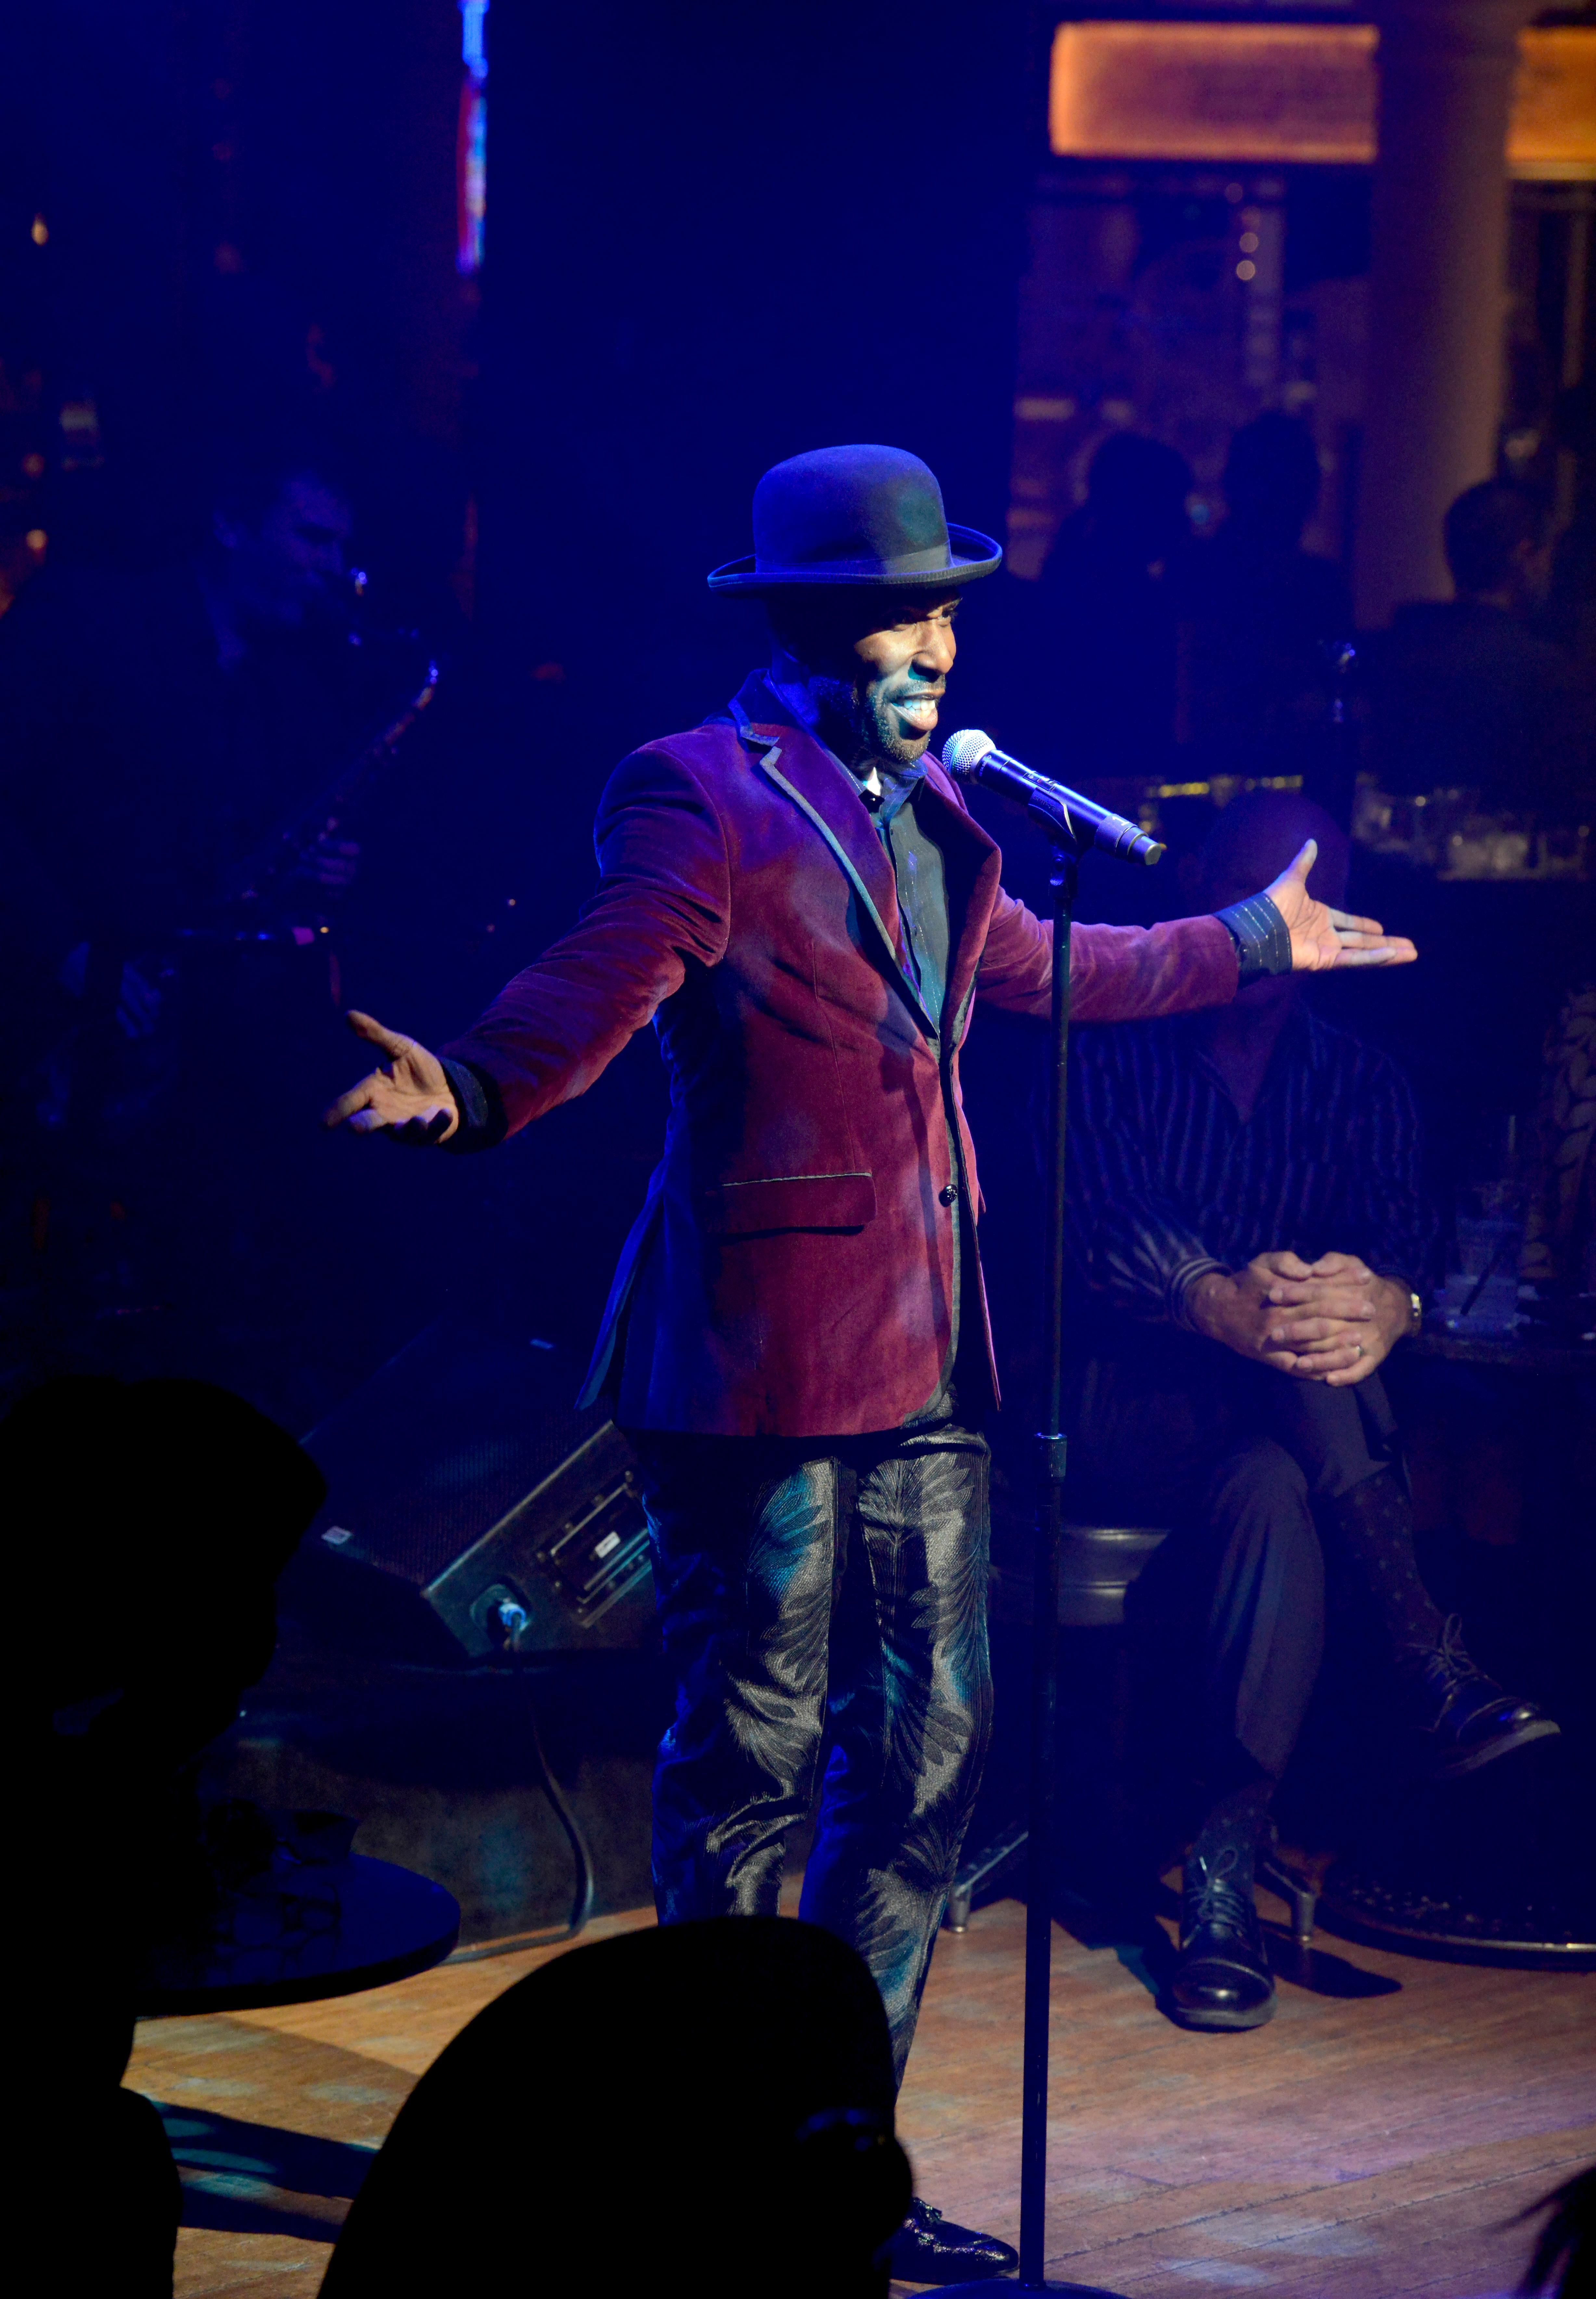 "Eric Jordan Young guides the audience through a vintage Vegas cabaret-style evening during opening night of the musical review ""The Cocktail Cabaret"" at Cleopatra's Barge in Caesars Palace Hotel & Casino. Thursday, November 30, 2017. CREDIT: Glenn Pinkerton/Las Vegas News Bureau"